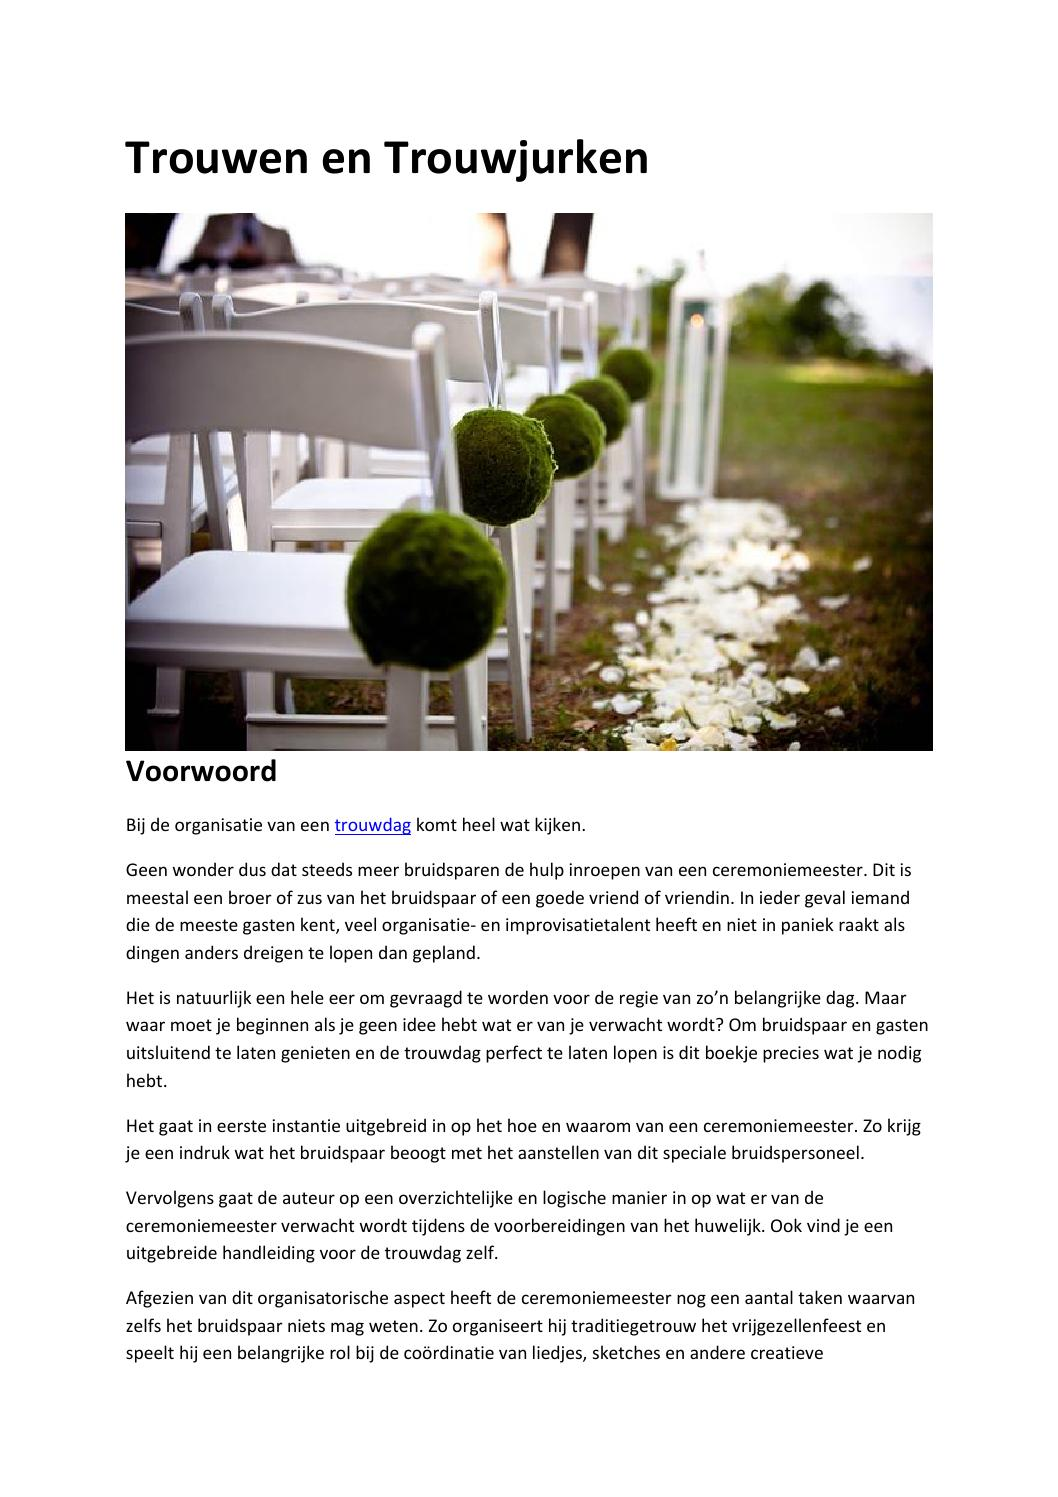 Trouwen En Trouwjurken By C Appelboom Issuu